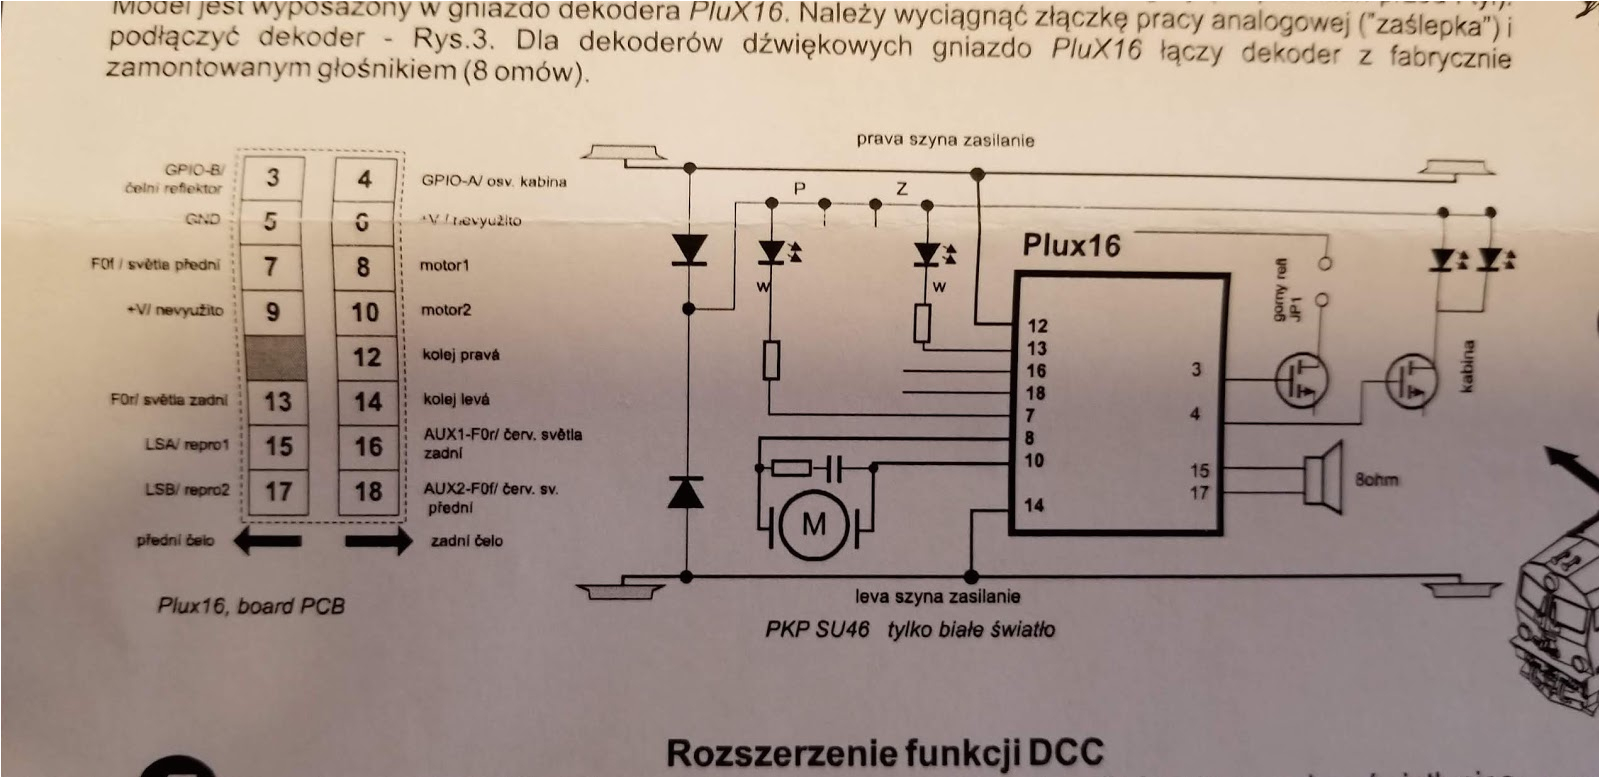 the diagram above shows that speaker should be connected to pins 15 and 17 of course the none of the pads on the main circuit board are labeled